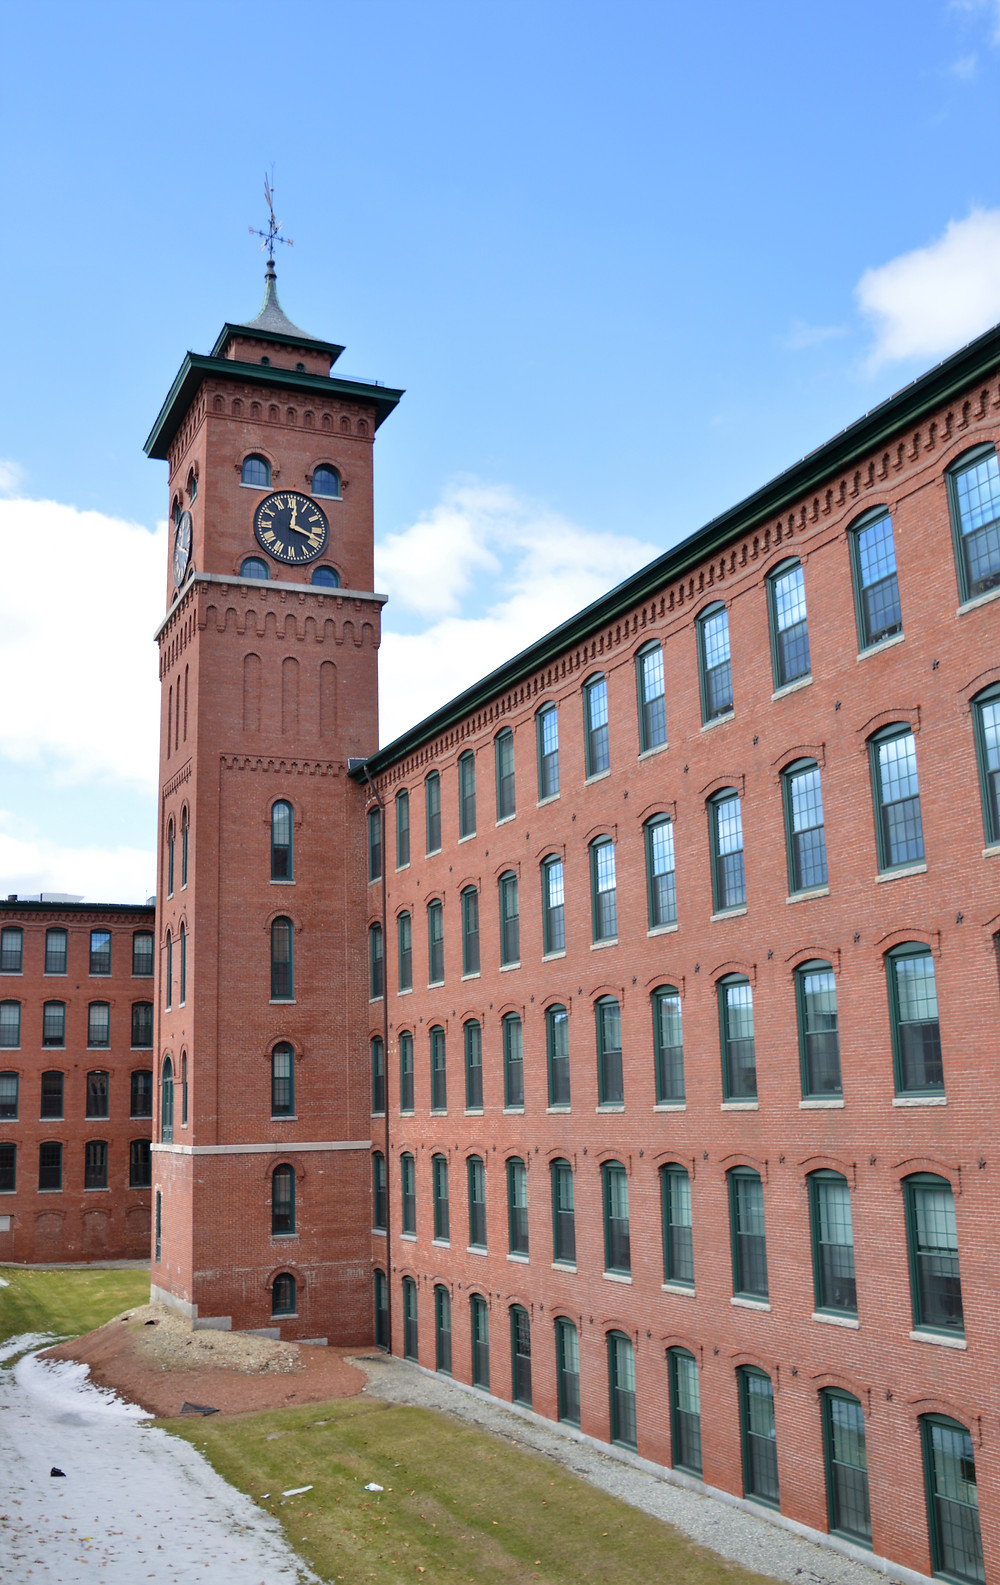 Nashua Manufacturing Company's Mill 2 and the elaborate clock tower